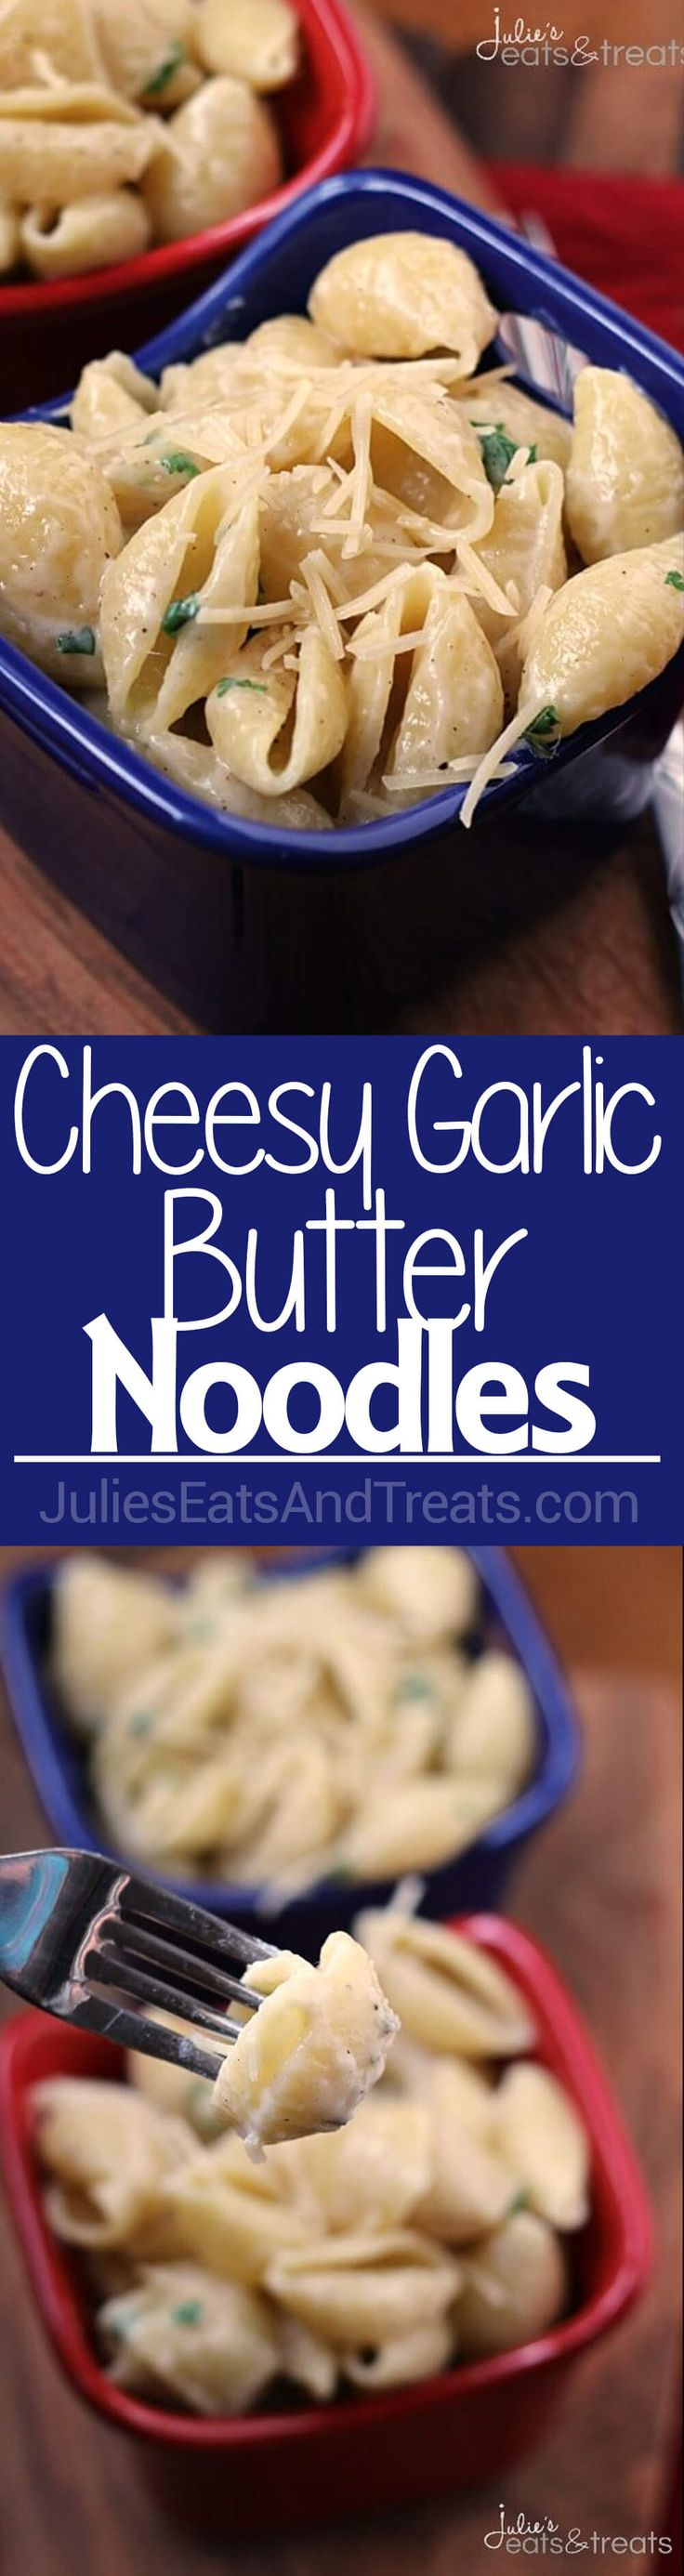 Cheesy Garlic Butter Noodles ~ Quick and Easy Side Dish for a Busy Night! Pasta Loaded with Garlic, Butter & Cheese! ~ http://www.julieseatsandtreats.com